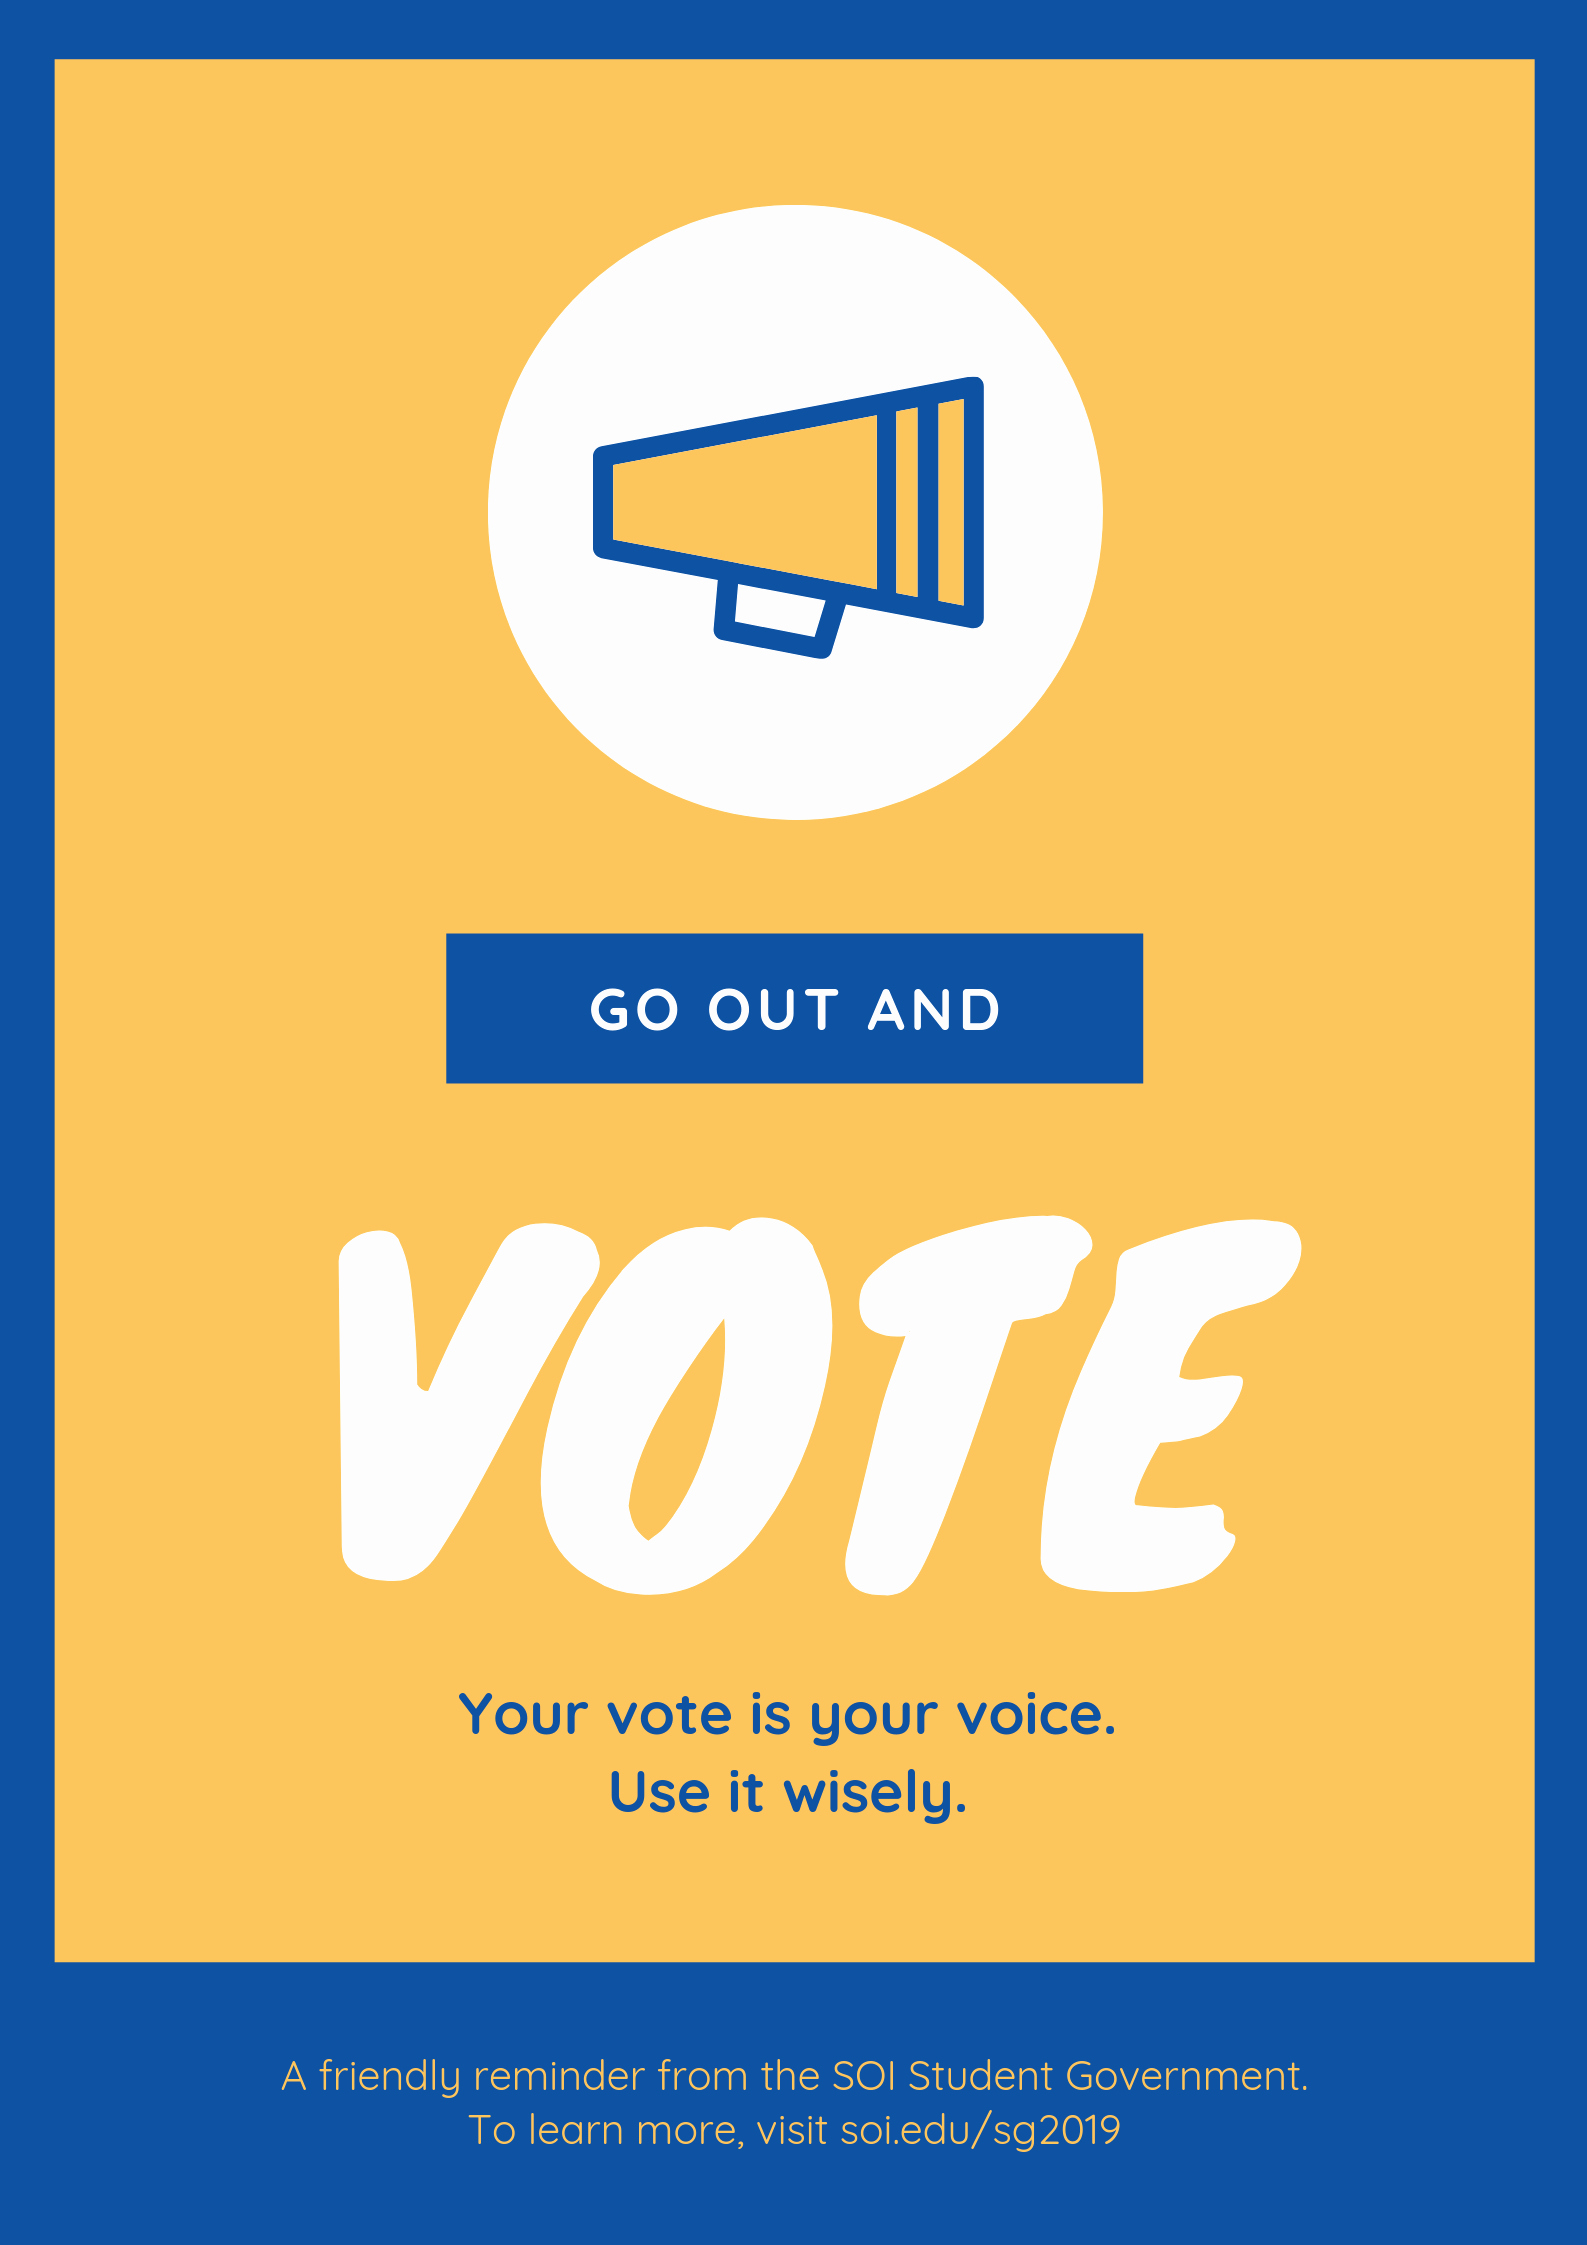 Student Council Poster Template Fresh 10 Techniques to Help You Win the Student Council Election [with Templates] – Learn